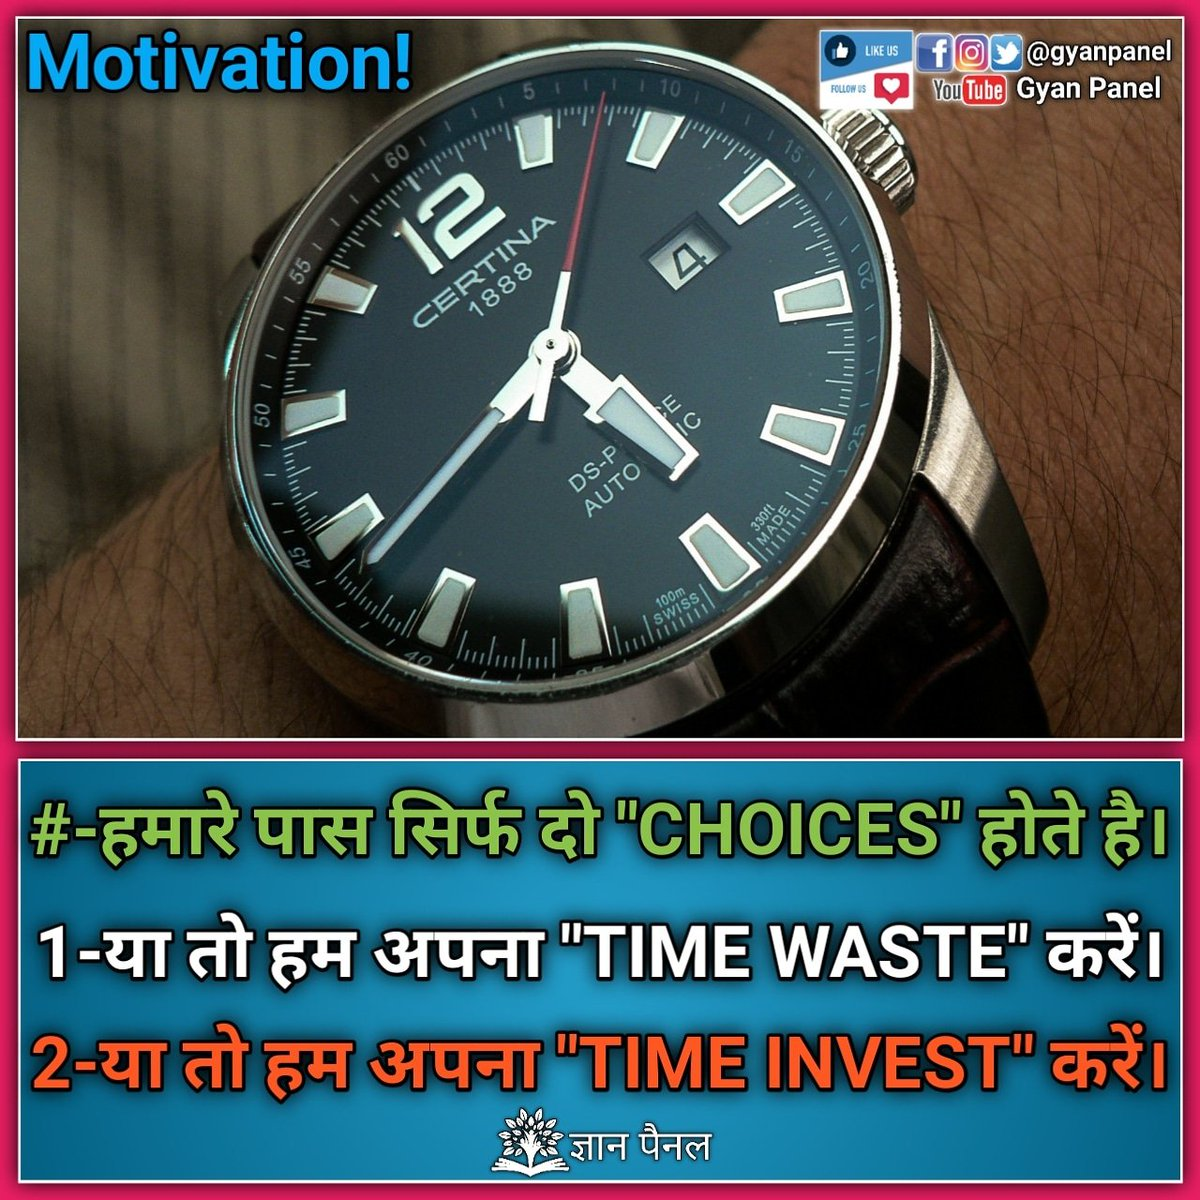 "Hamare pas sift 2 #choices"" hote hai. Ya to hum ""#time #waste"" kare. Ya to ""#Invest"" kare!  @gyanpanel #motivation #motivationalquotes #generalknowledge #positivethinking #familytime #positive #time #choices #prilaga #positivequotes #currentaffairs #mondaymotivation #gyanpanelpic.twitter.com/tsd5j0xQUj"